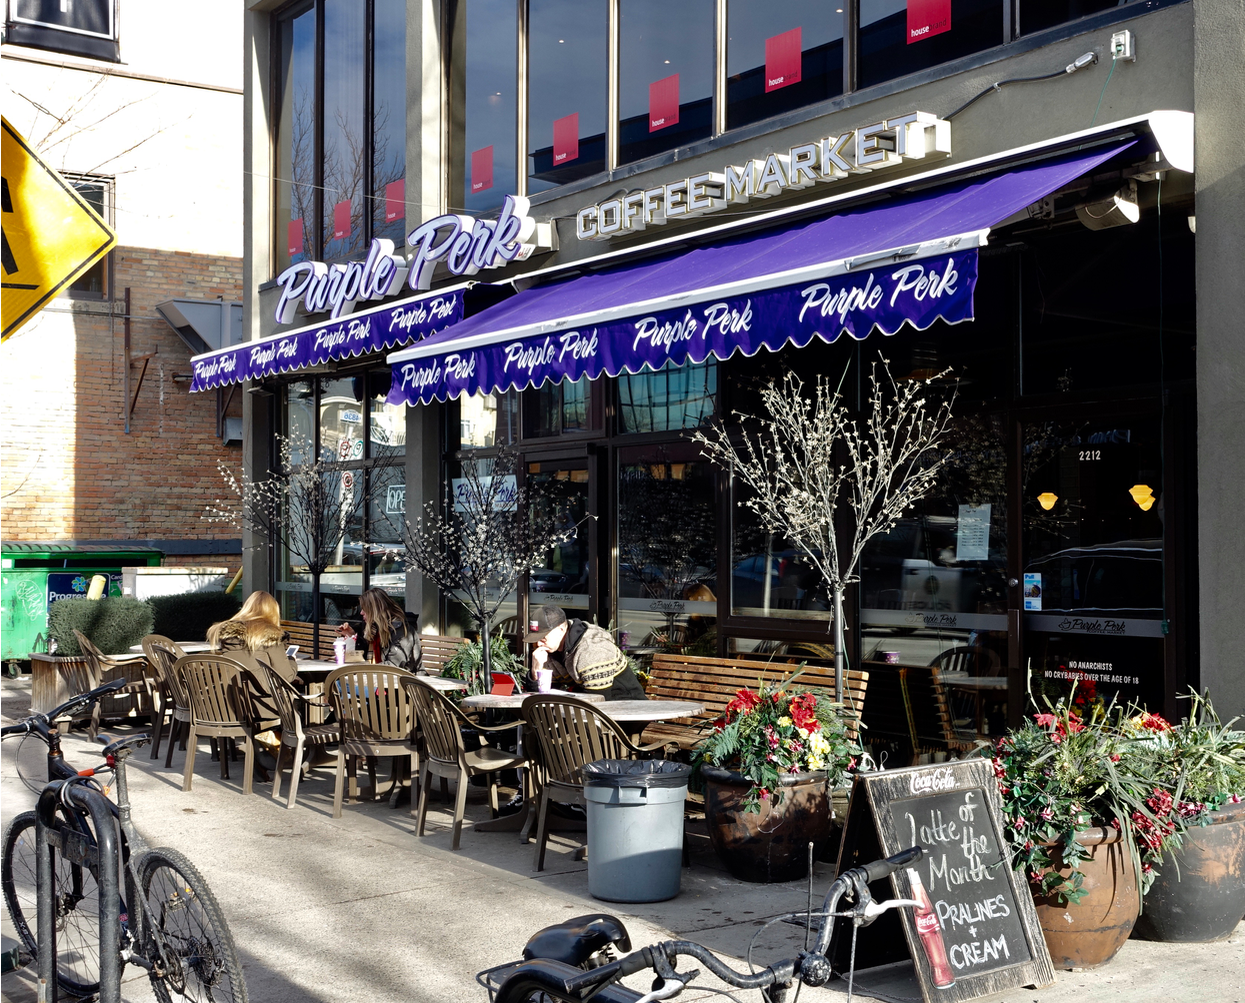 Calgary has a vibrant independent cafe culture.